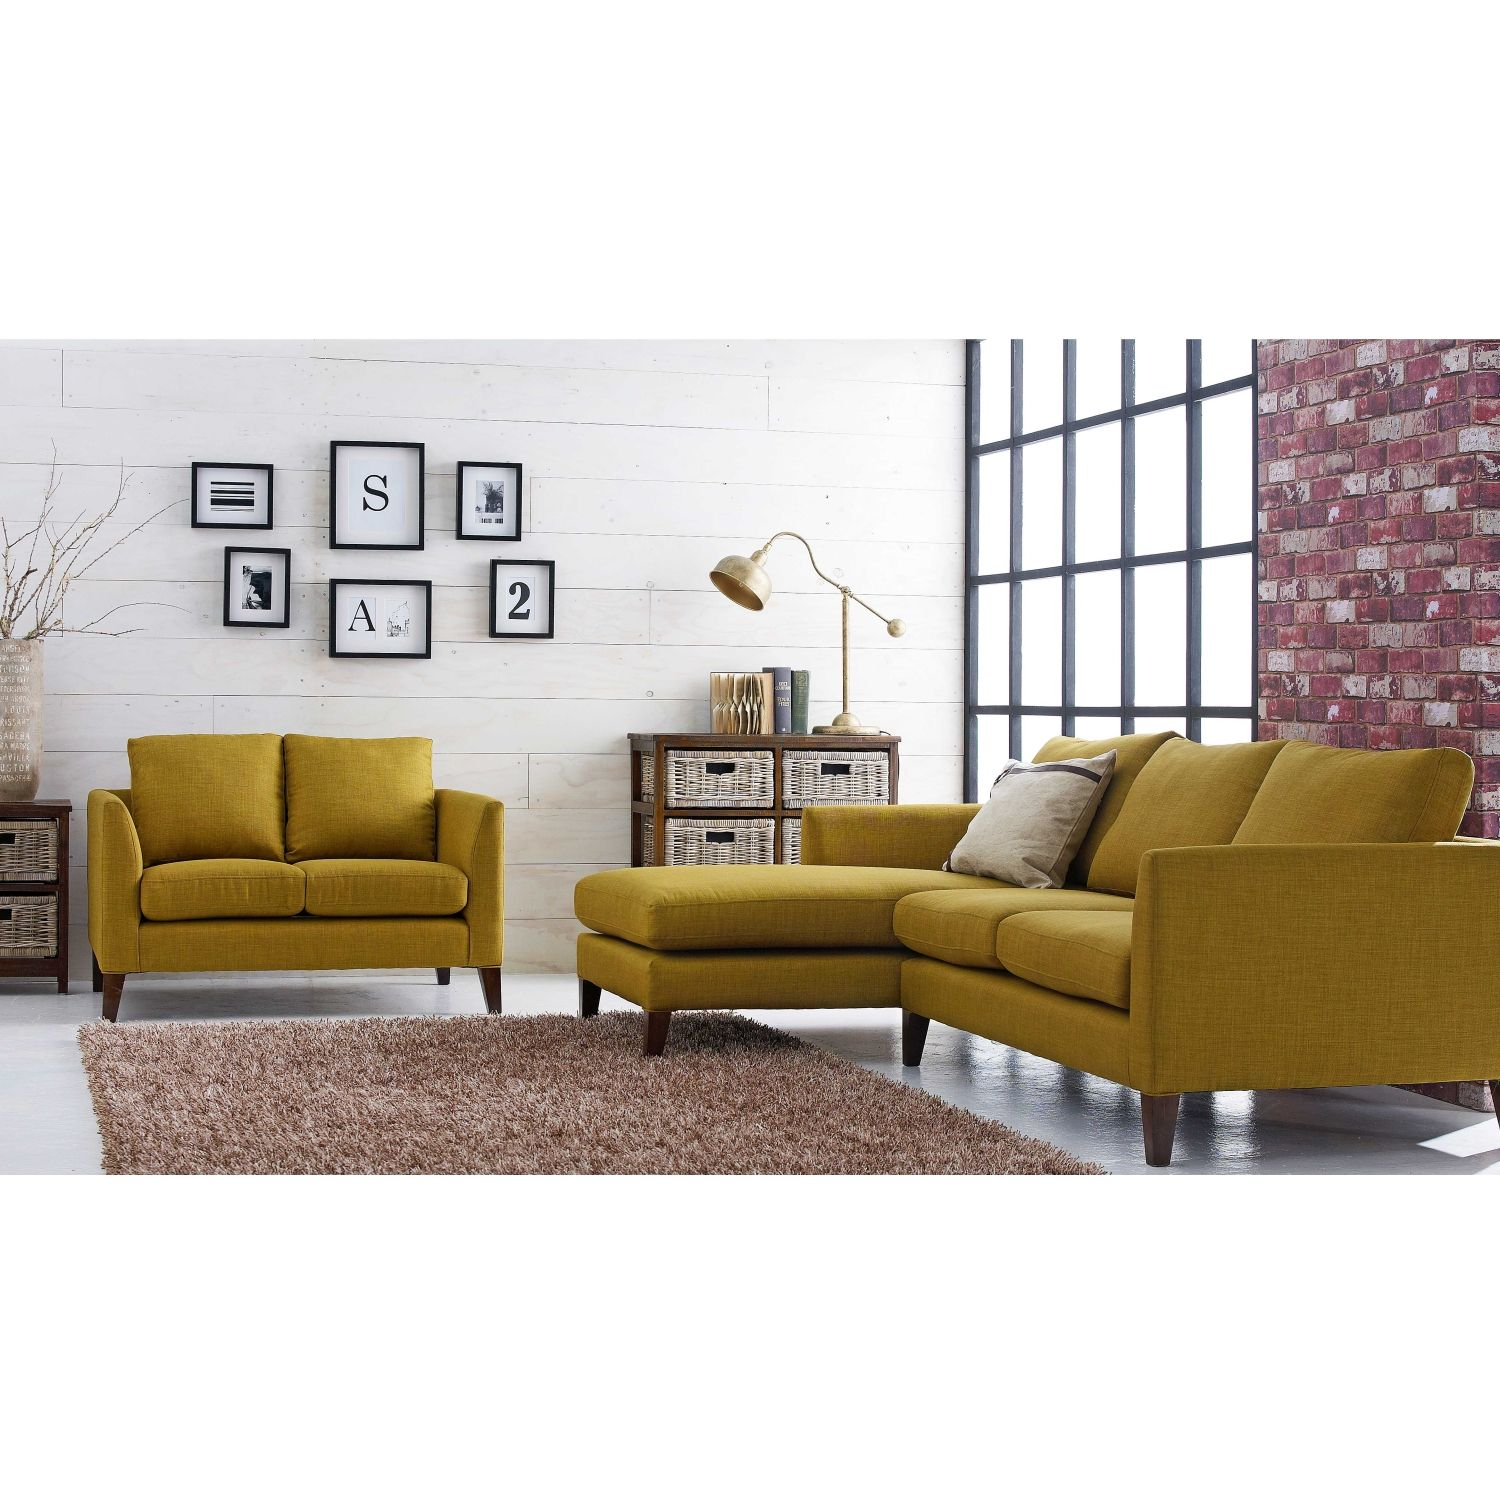 Ethan 2-Seater 2.5 Seater Sofa with Chaise Package from Domayne ...